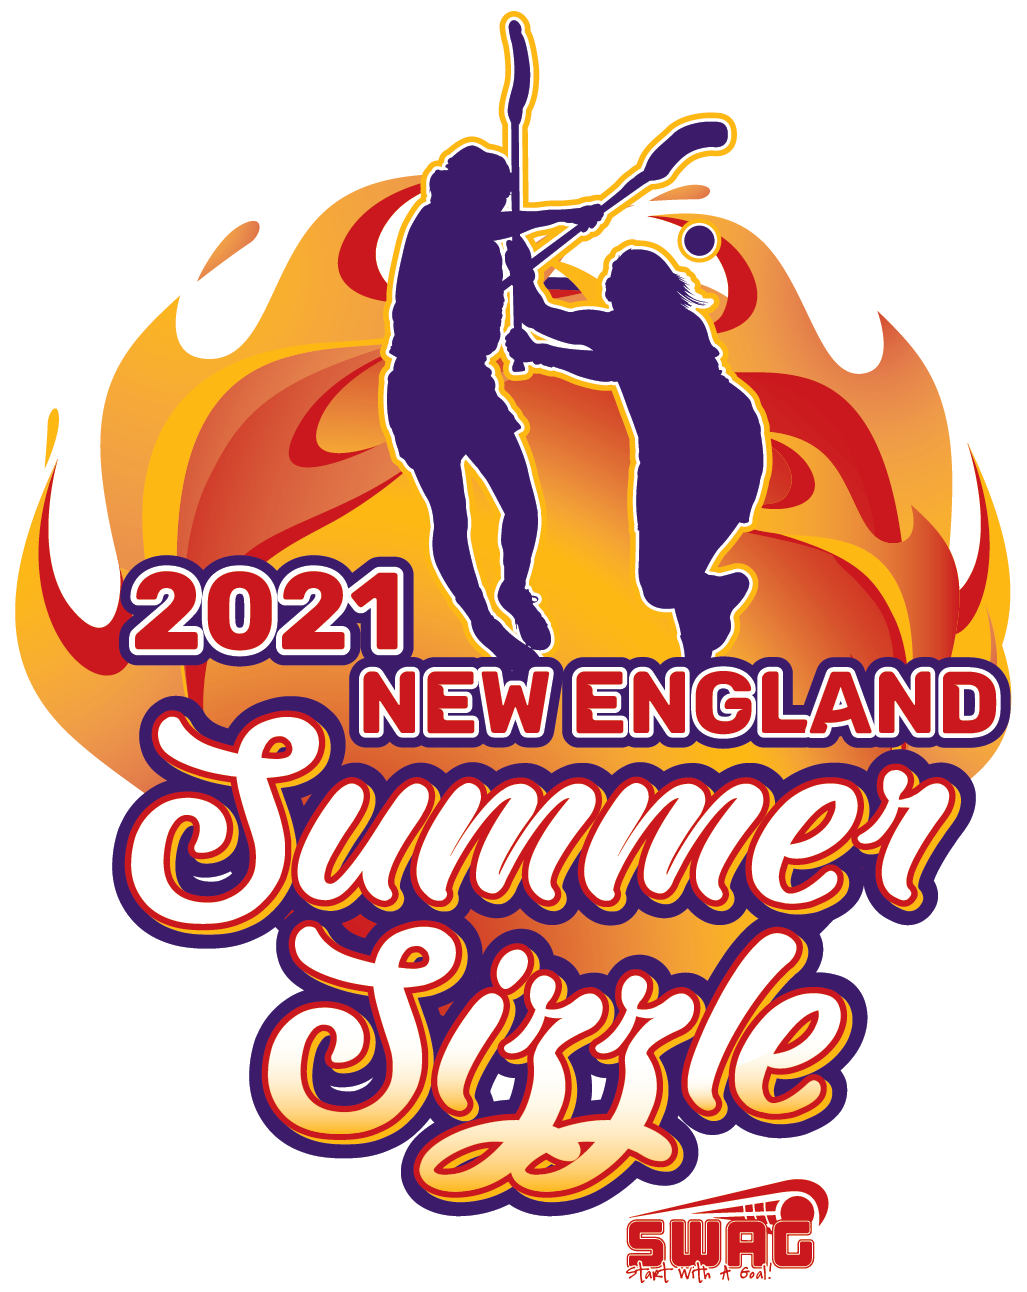 2021 NEW ENGLAND SUMMER SIZZLE@2x (1)